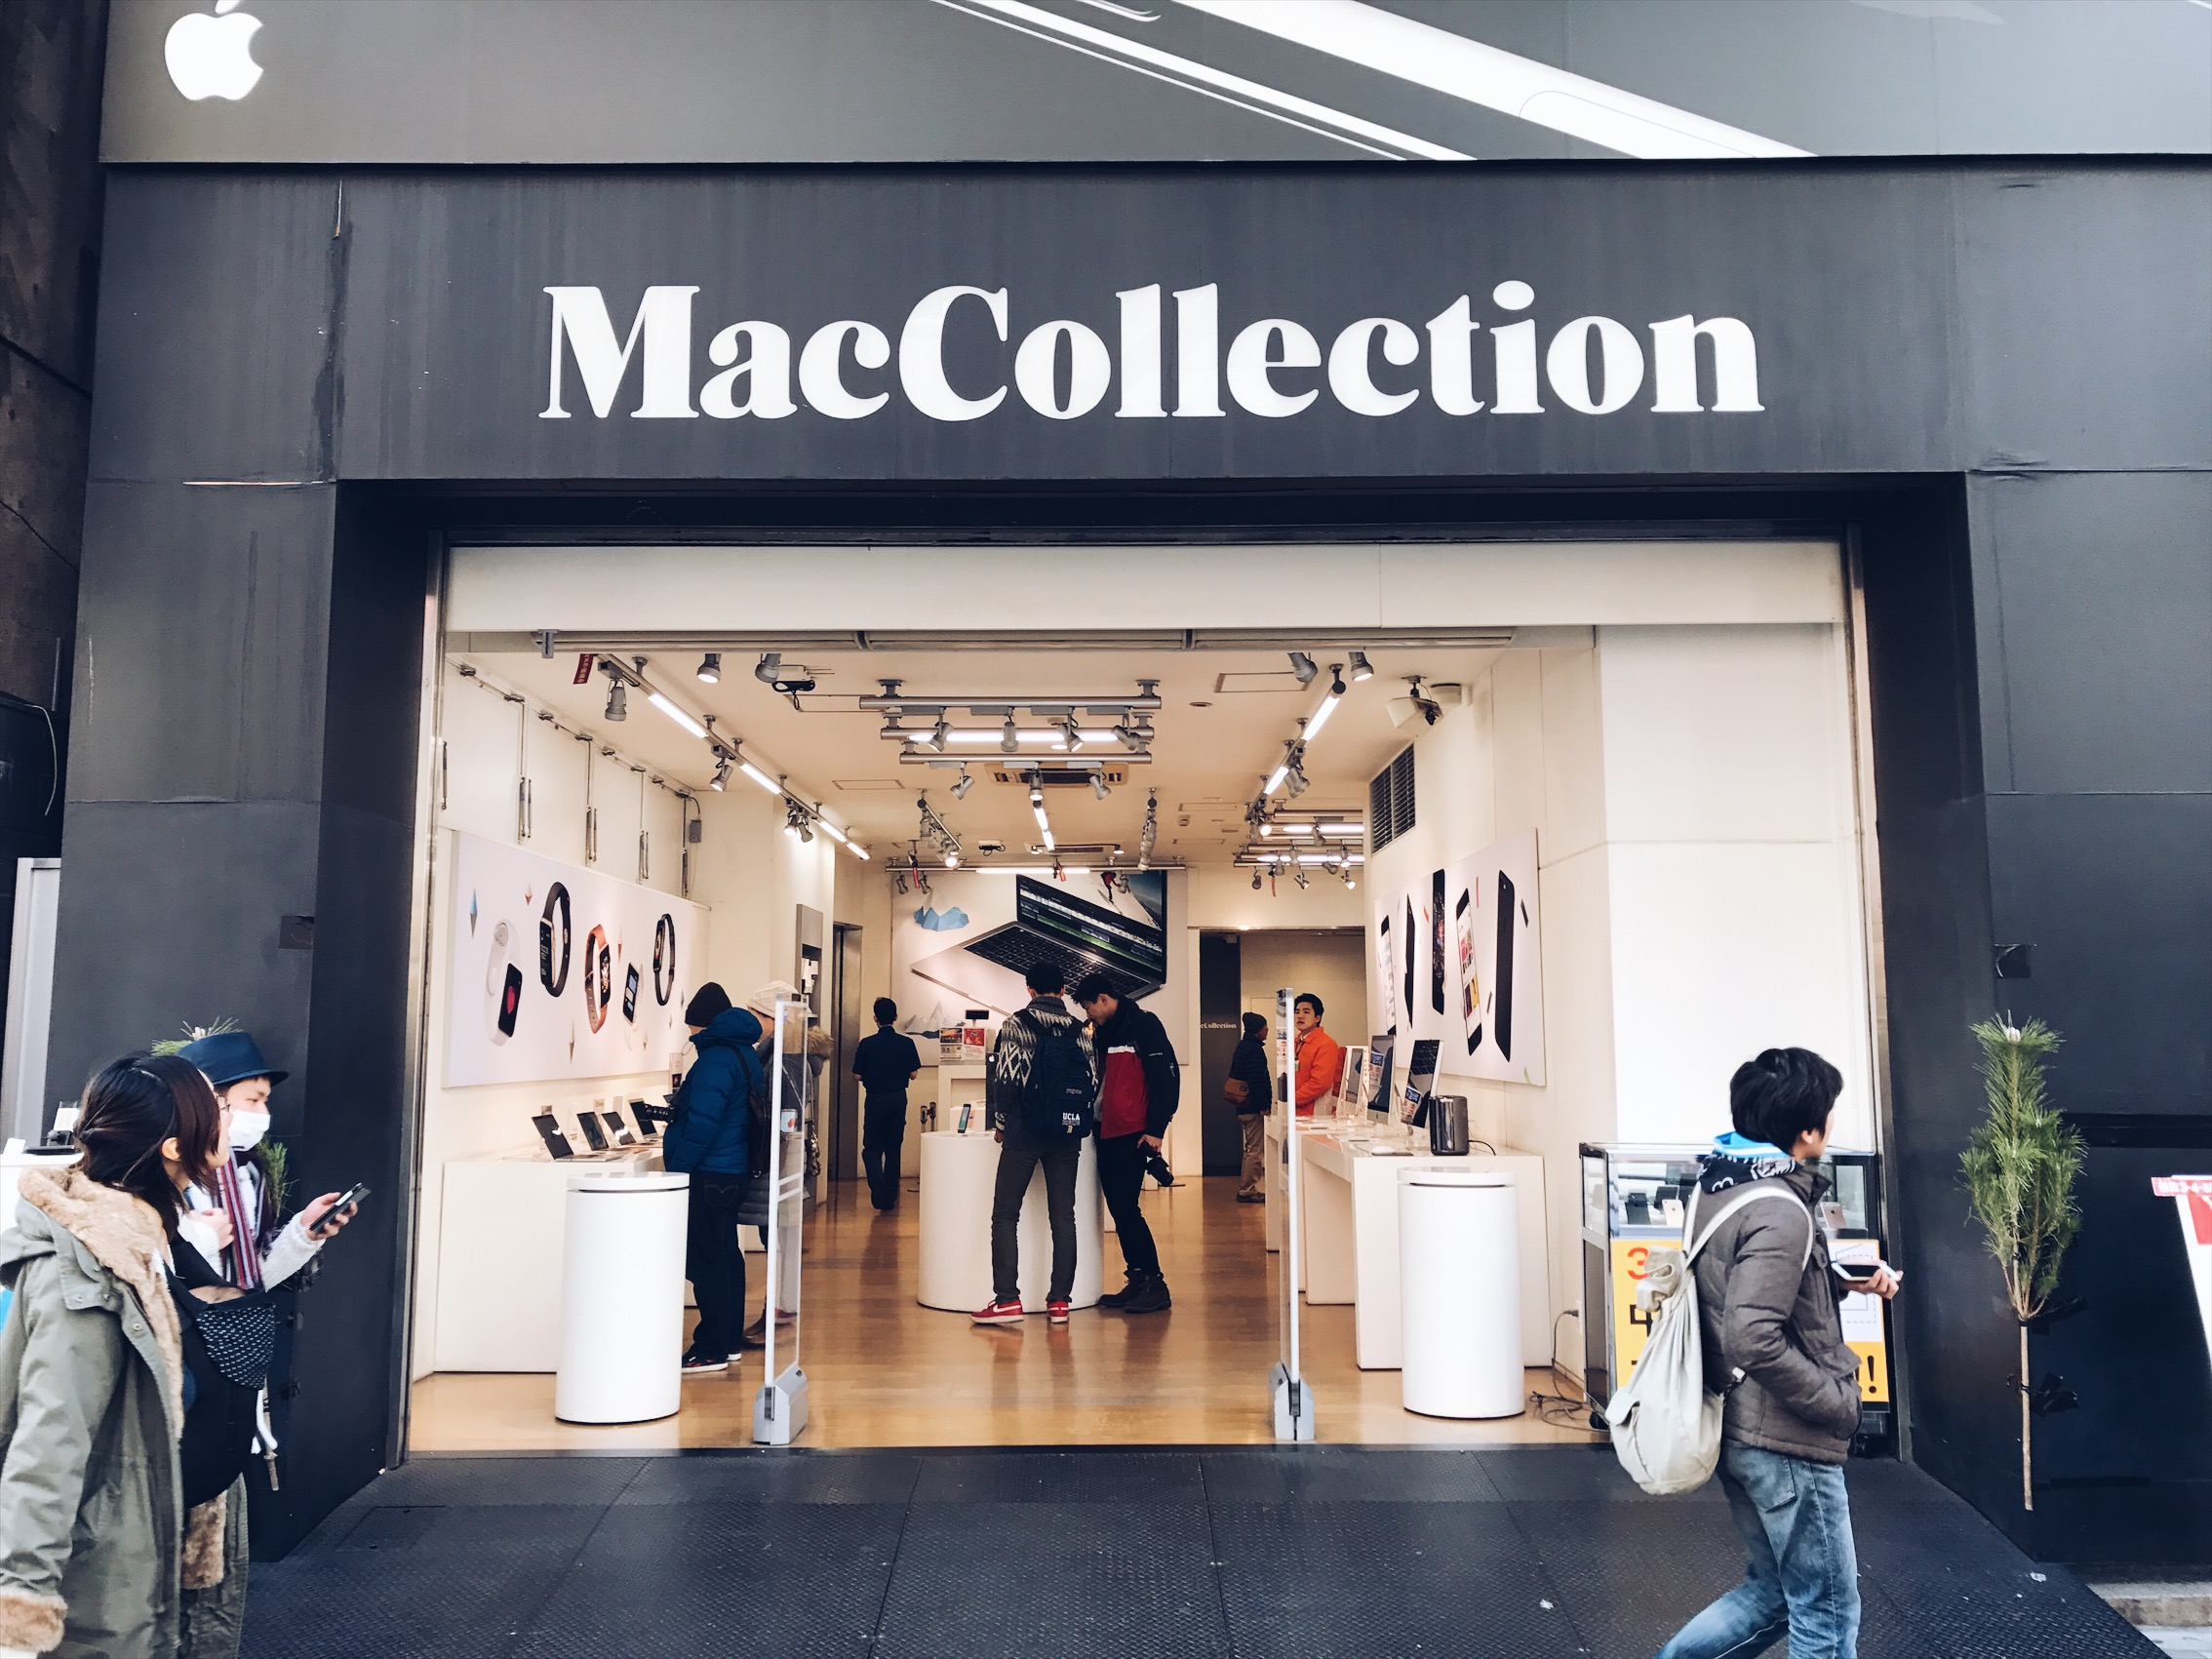 Mac Collection huh? Looks like an Apple store, I'm still mad at you Apple.